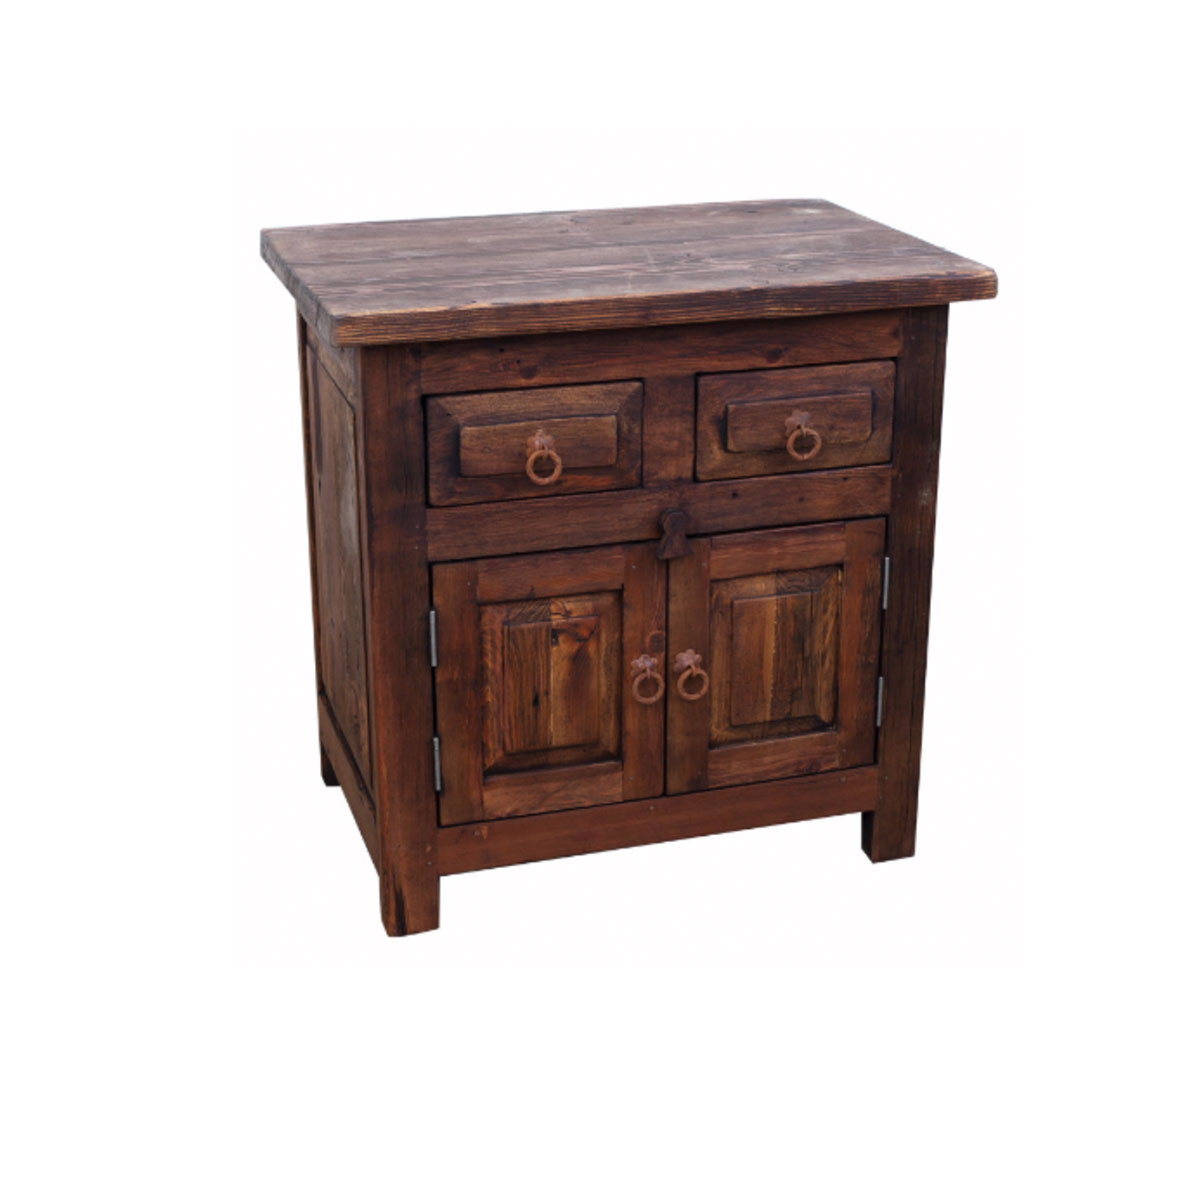 Buy 2 drawer rustic bathroom vanity online perfect for a for Bathroom vanities